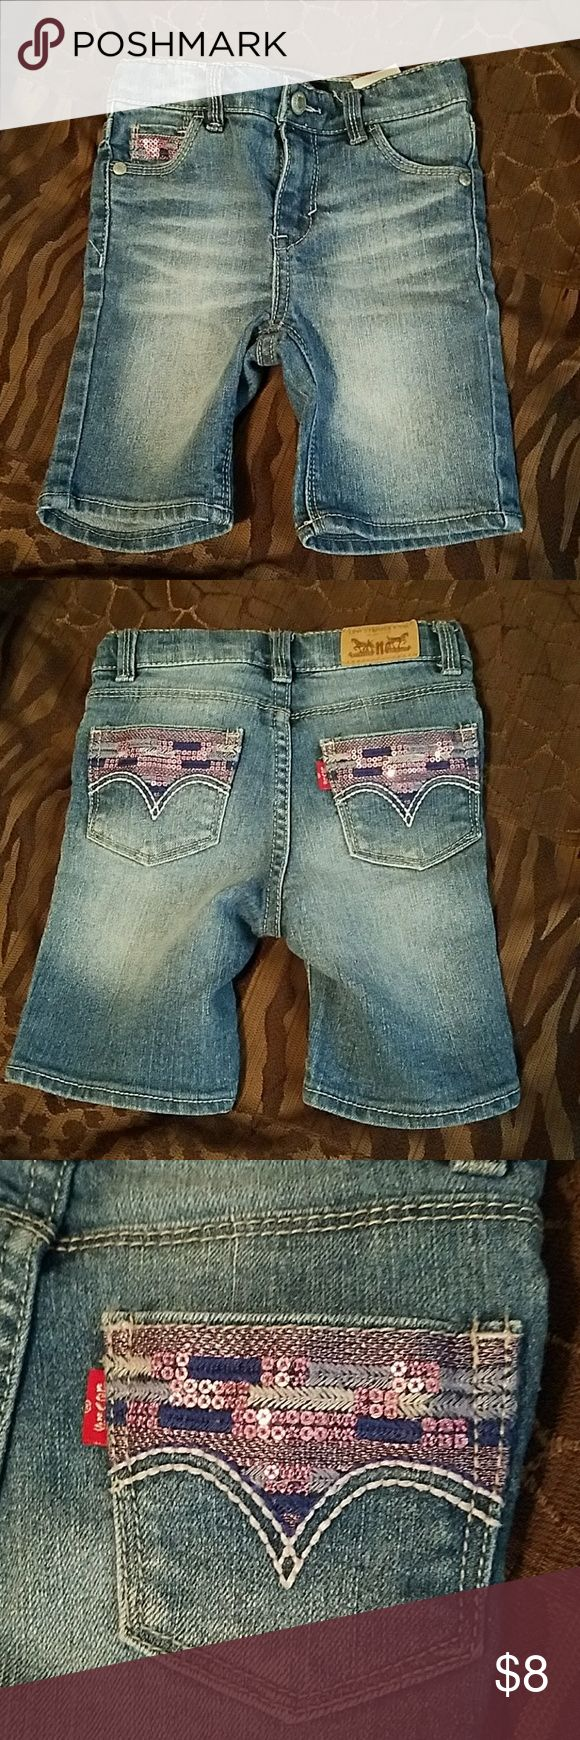 Toddler girl 3T Toddler girl levis Bermuda shorts, size 3T. Sequin and decorative stitching on back pockets. Adjustable waist. Great condition. Levi's Bottoms Shorts